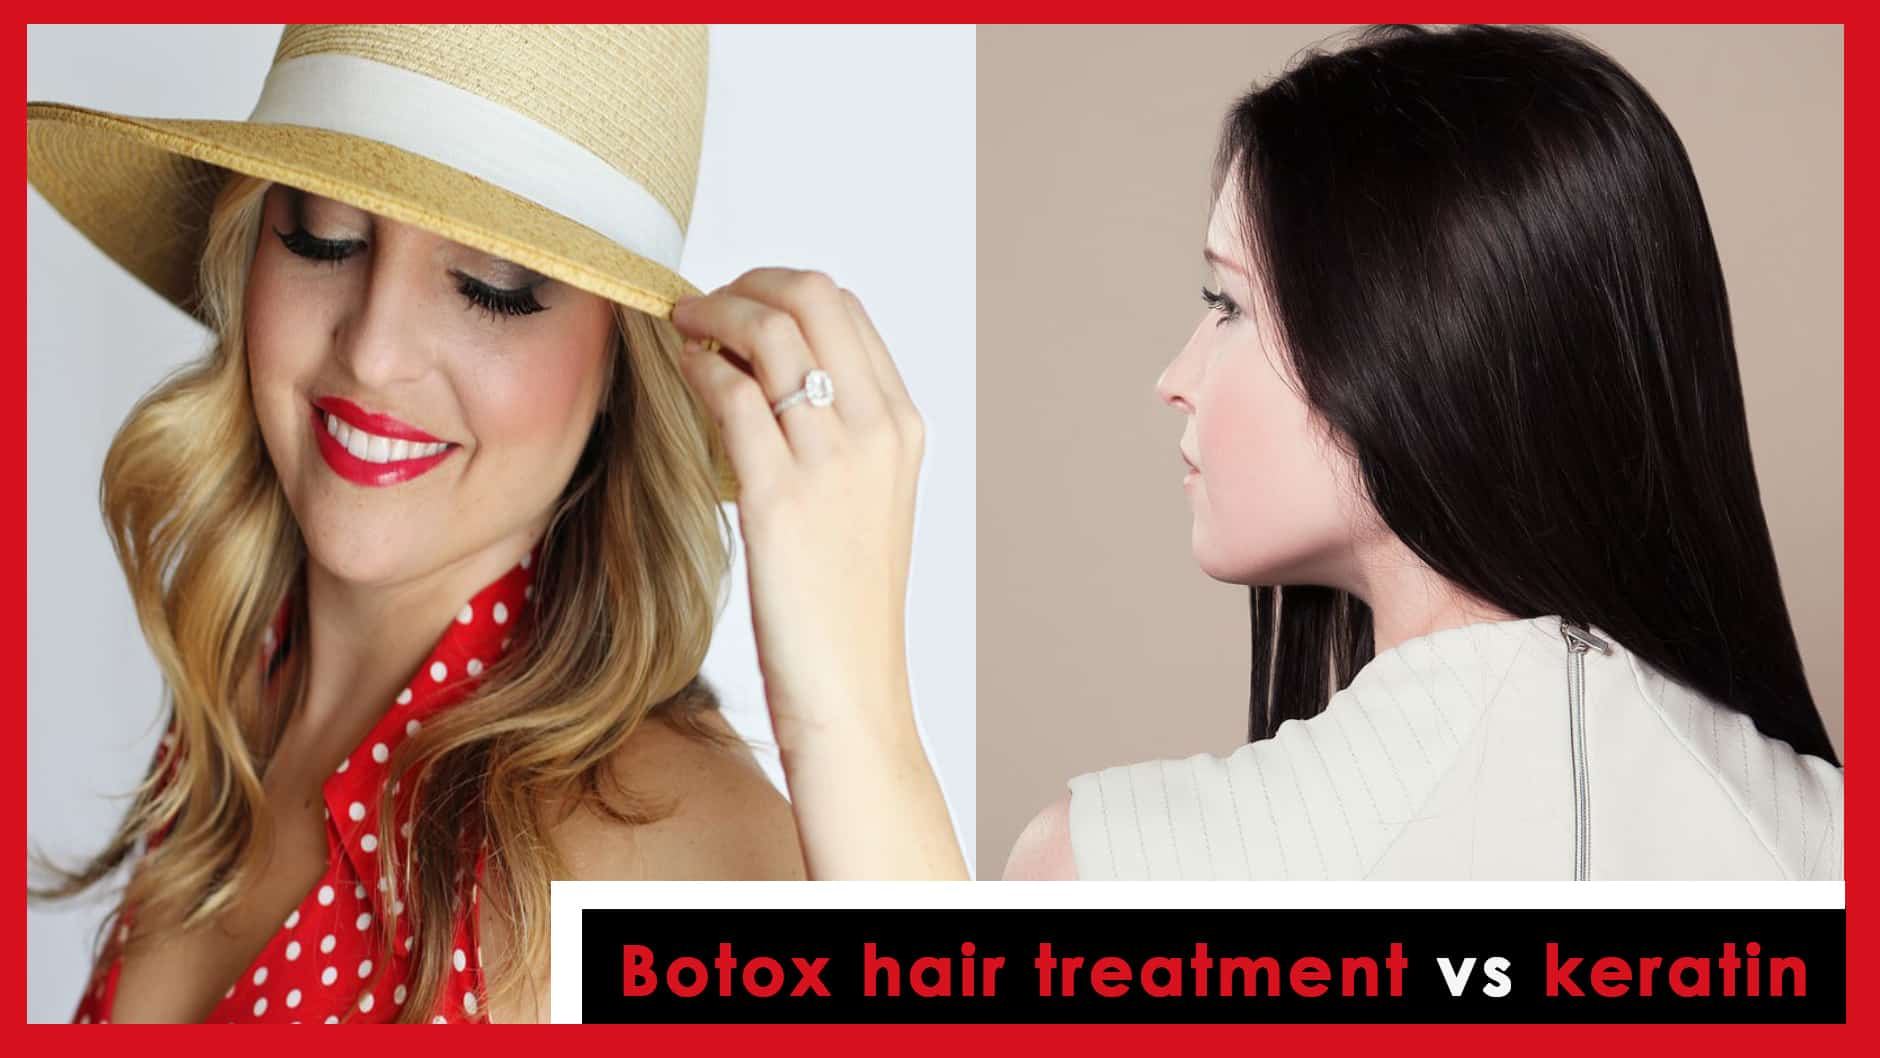 Botox hair treatment vs keratin